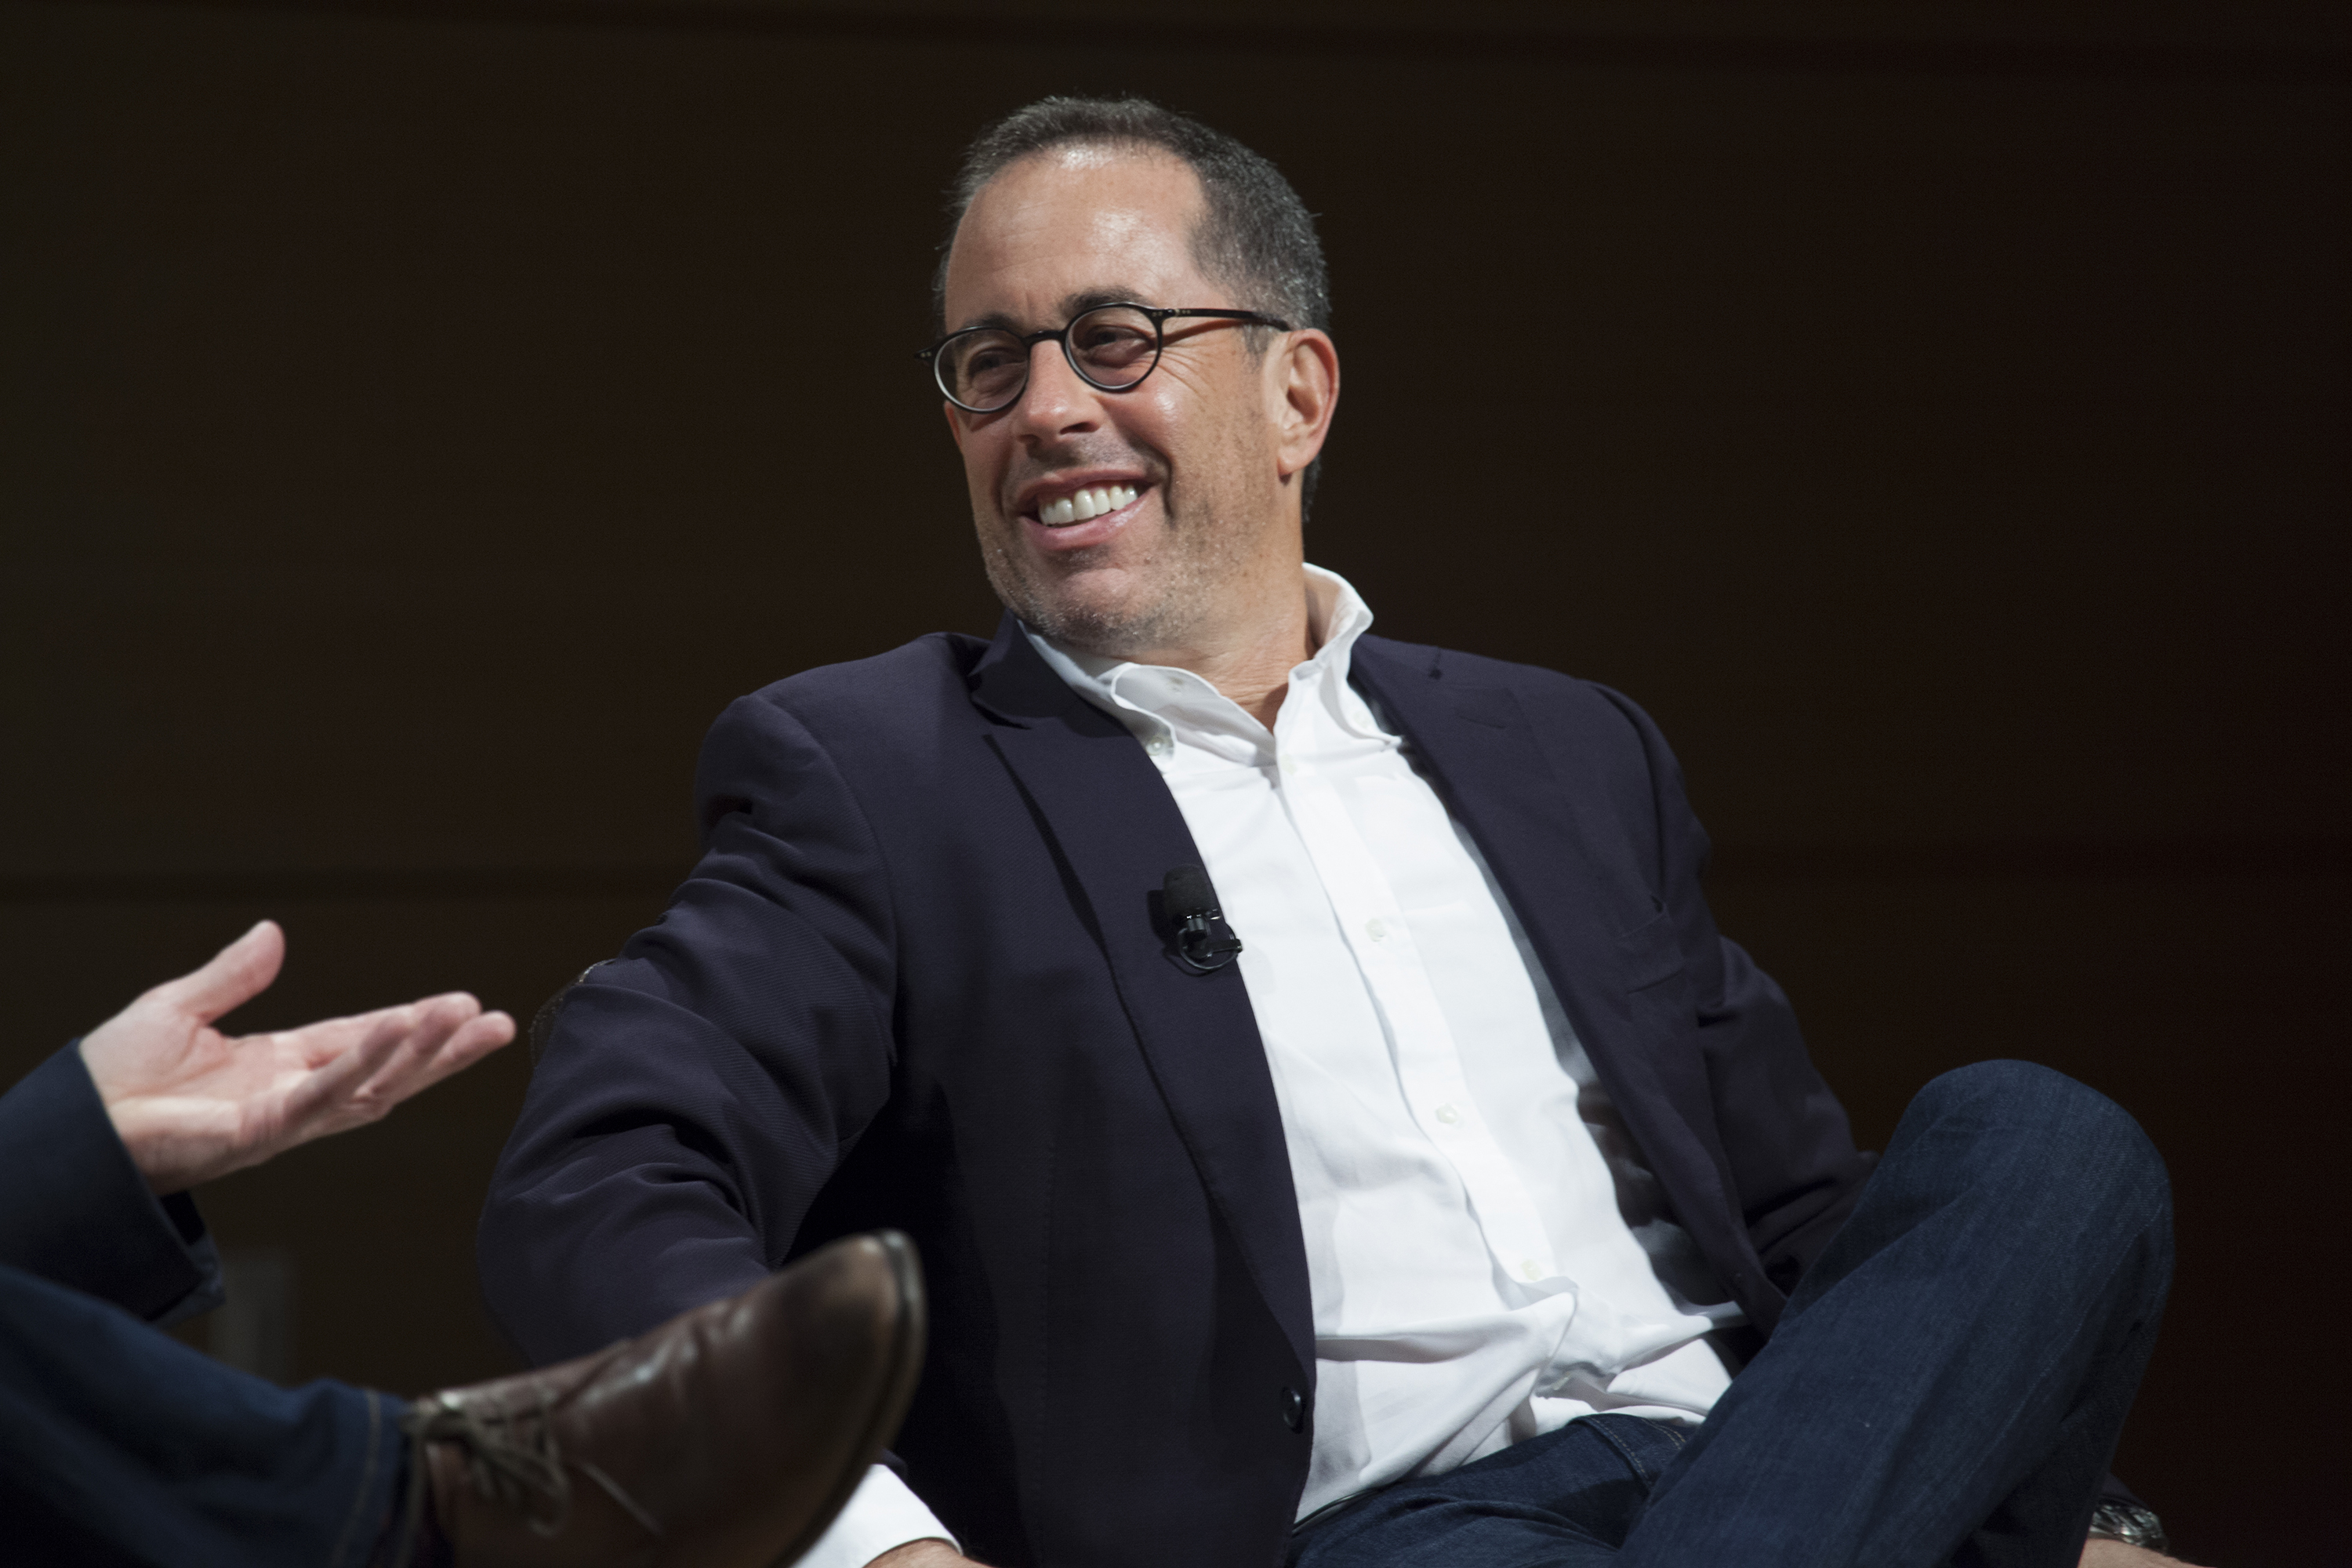 Jerry Seinfeld attends TimesTalks at The New School on December 1, 2016 in New York City.